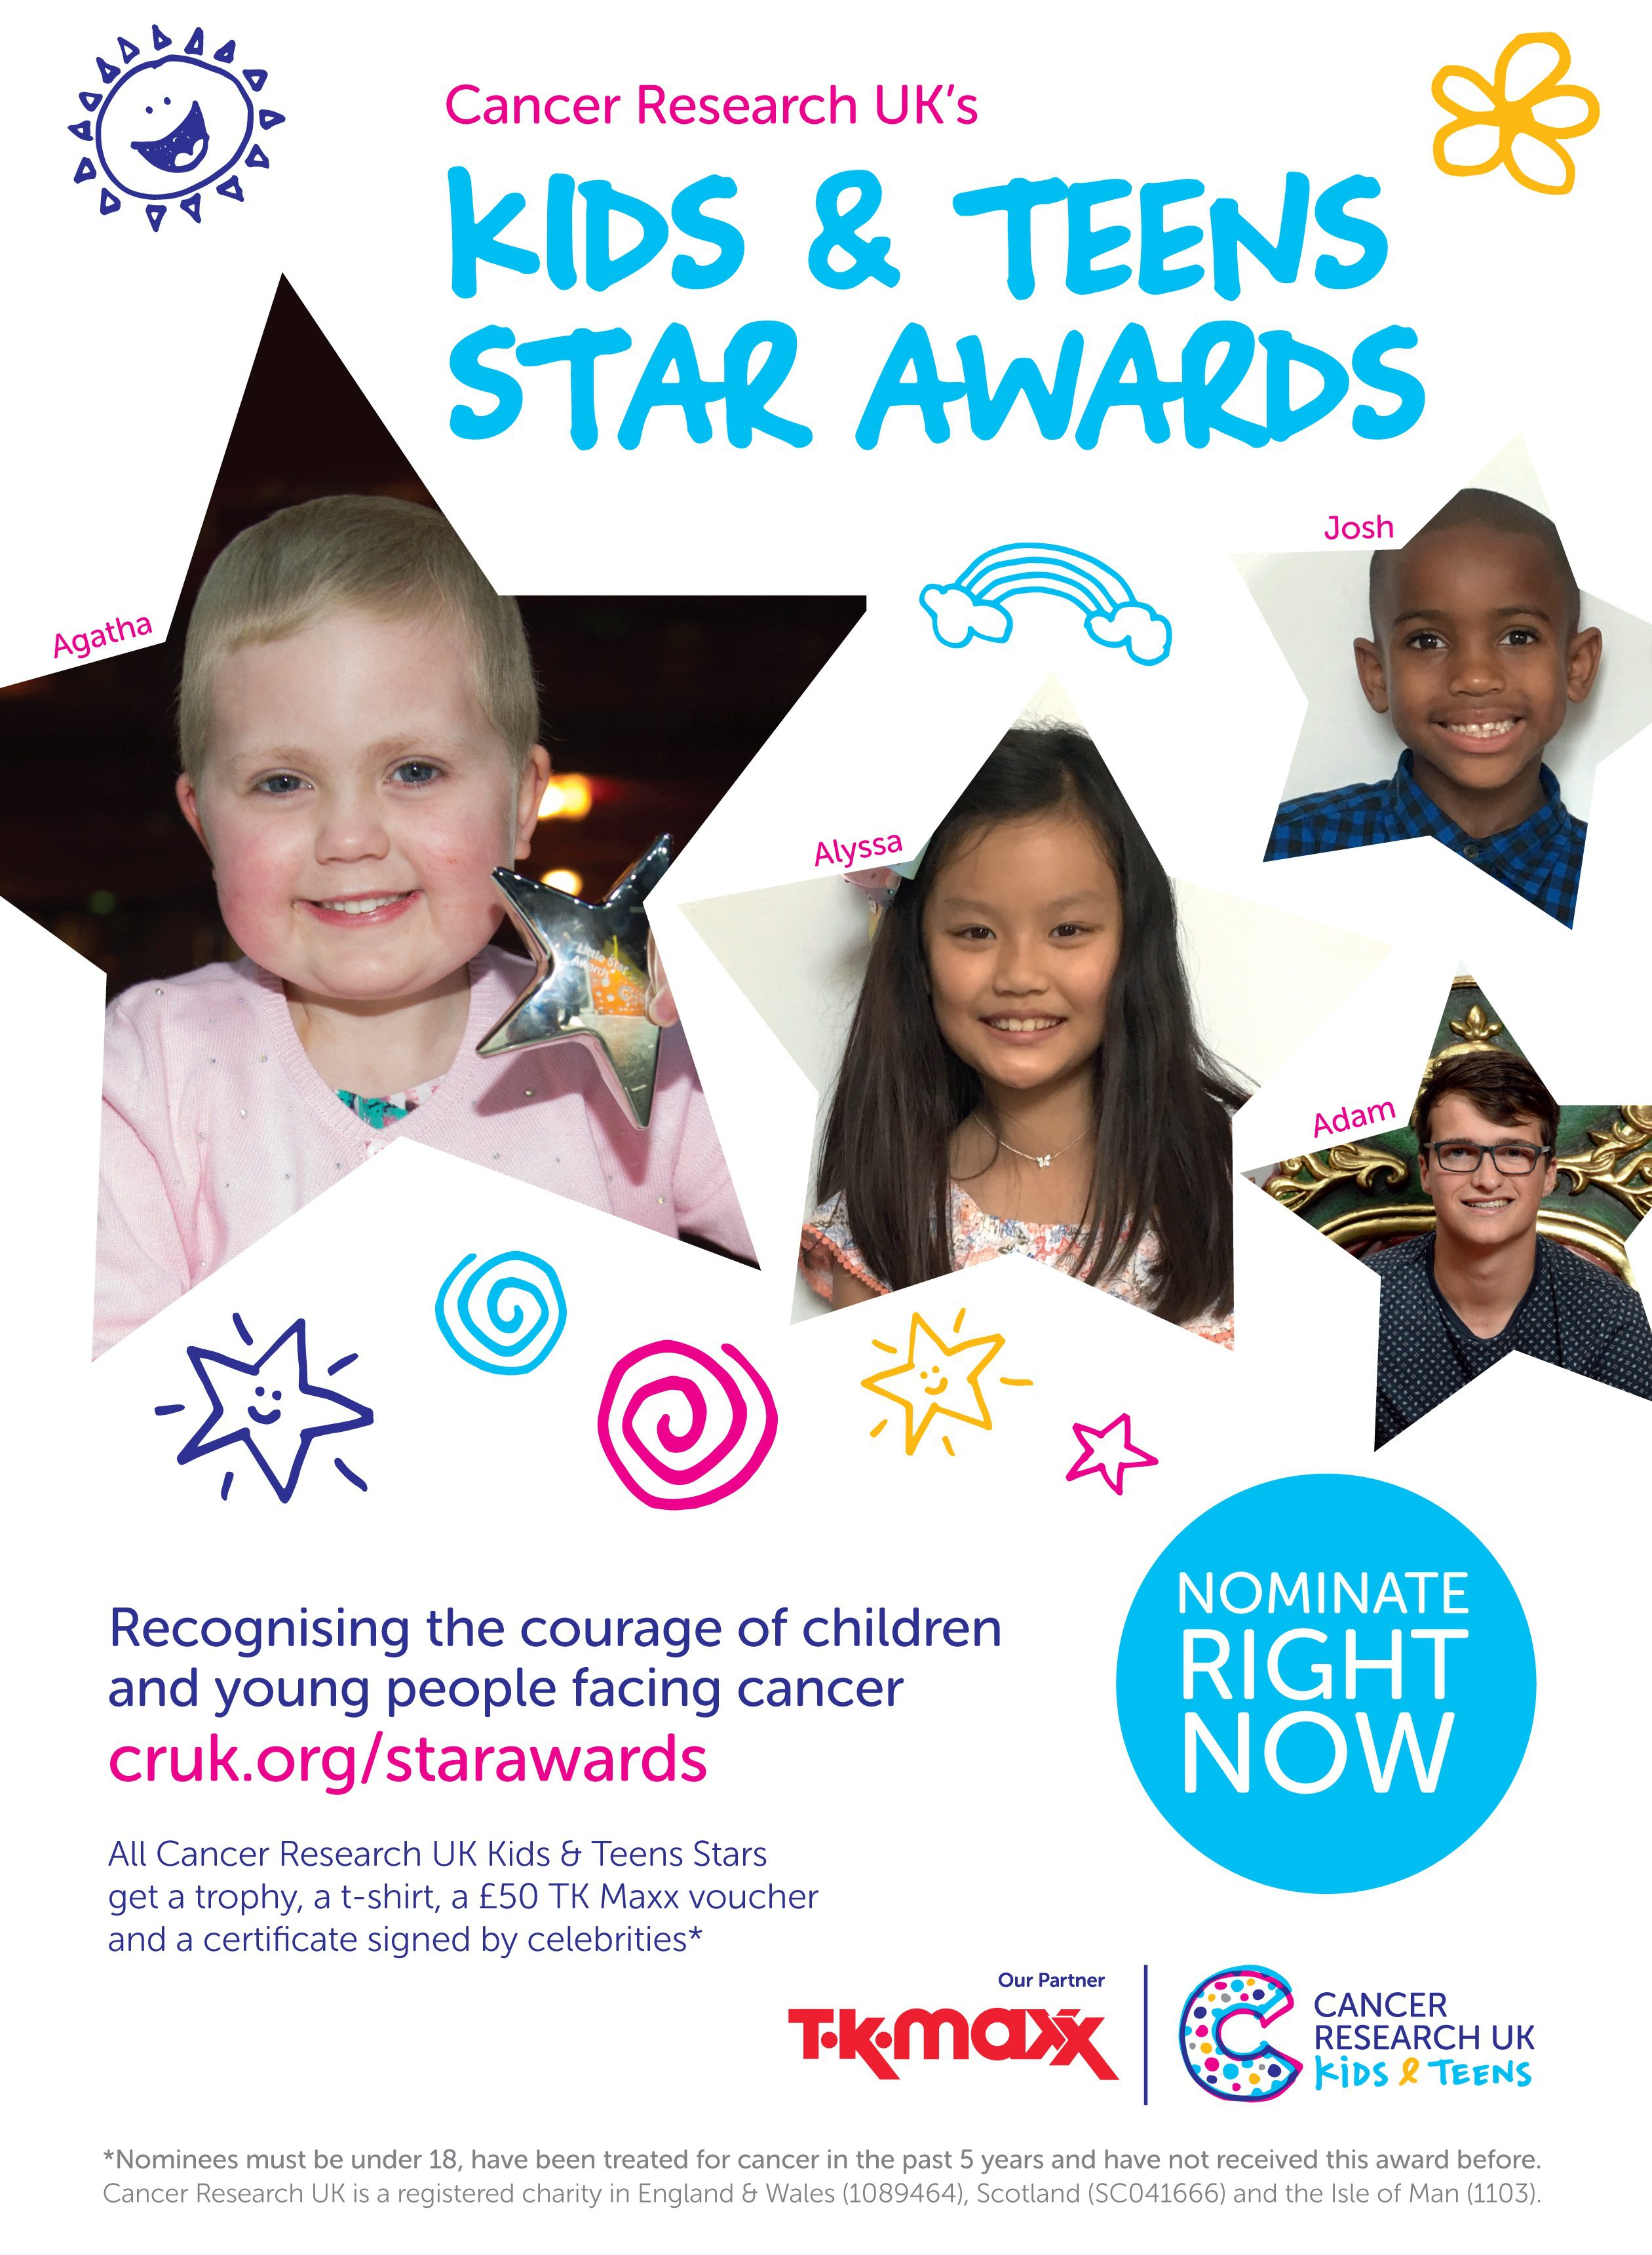 Cancer ResearchUK Star Awards 2018 poster which features Agatha King, aged seven, from Fife who has overcome leukaemia